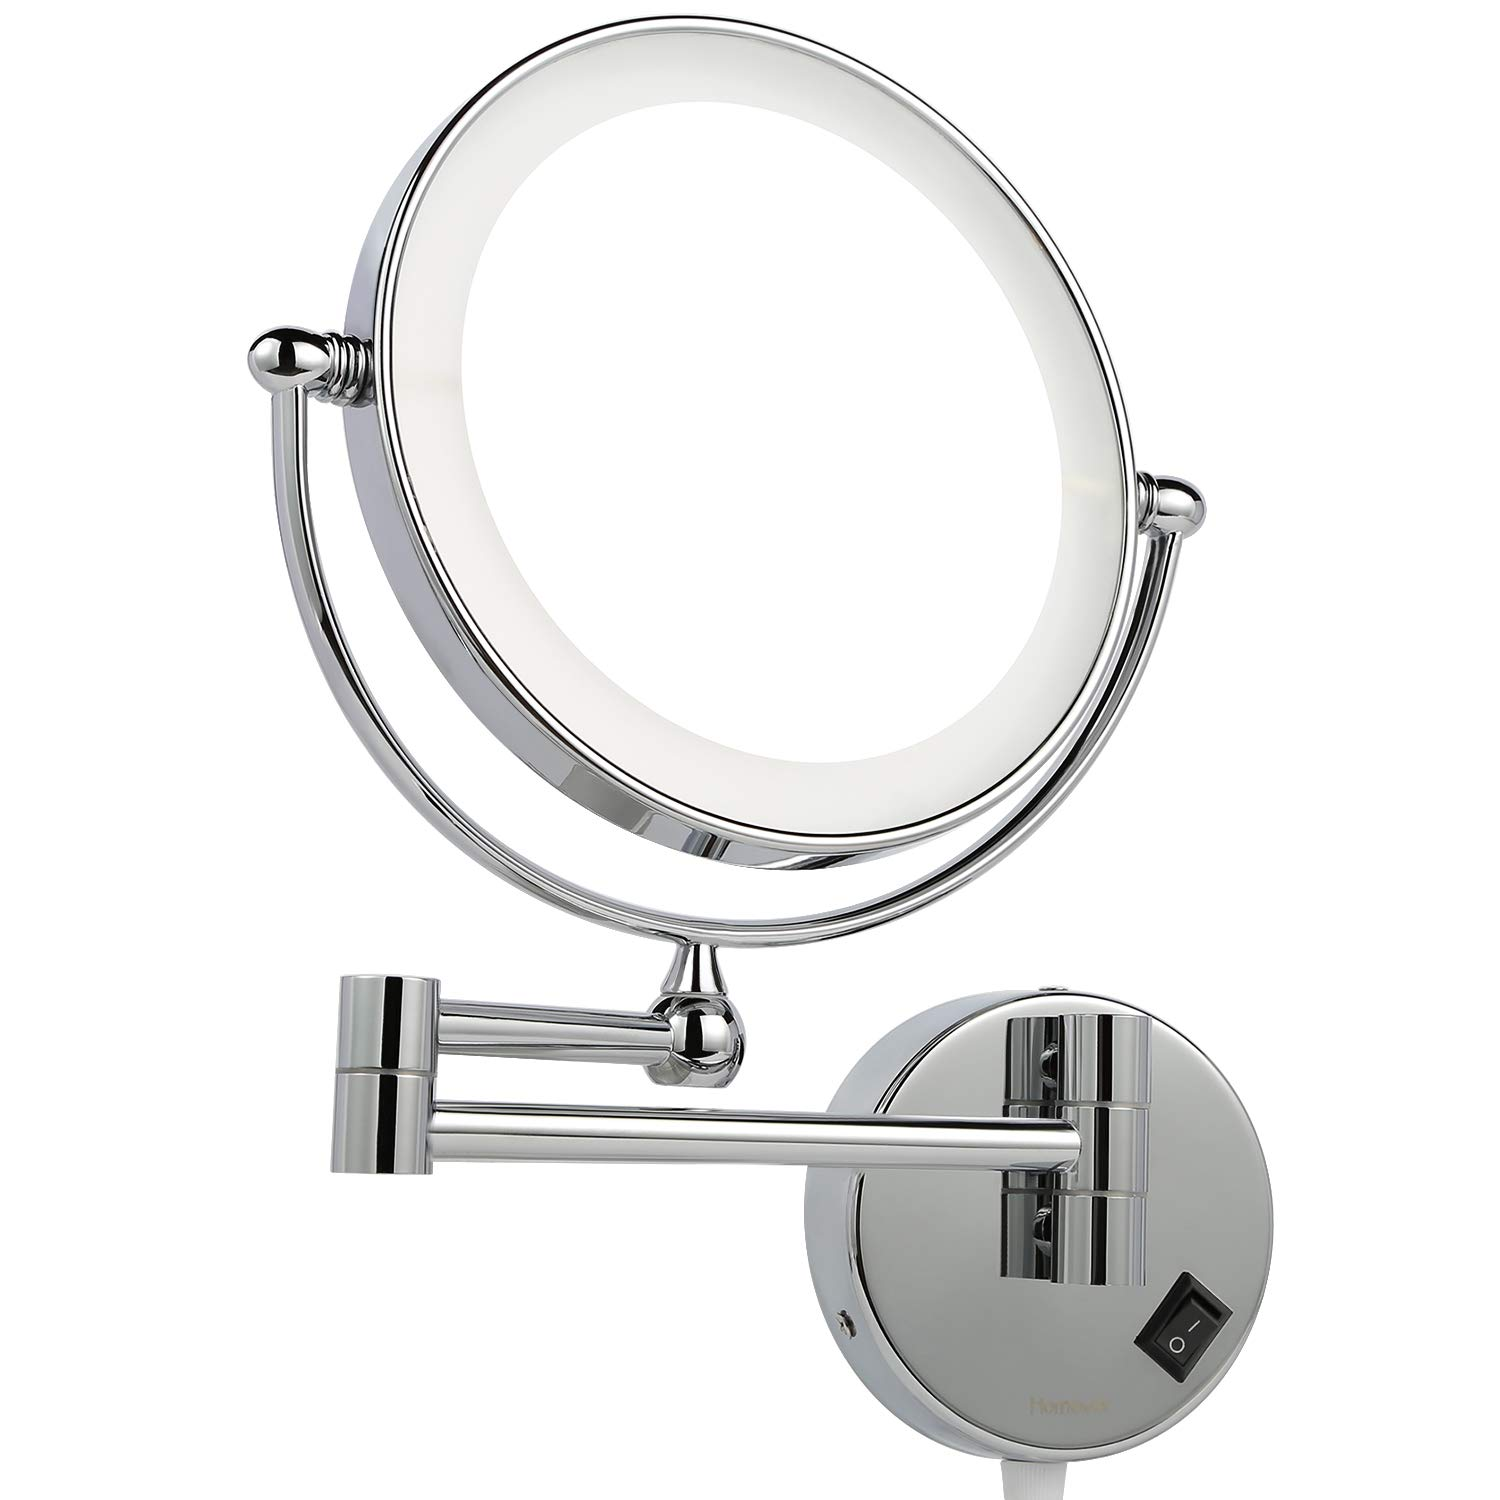 Homever Wall Mounted Makeup Mirror LED Lighted with 1x/5x Magnification, Round Shaped Double-Sided, 360° Free Rotation, Extendable and Chrome Finished for Bathroom, Spa and Hotel by Homever